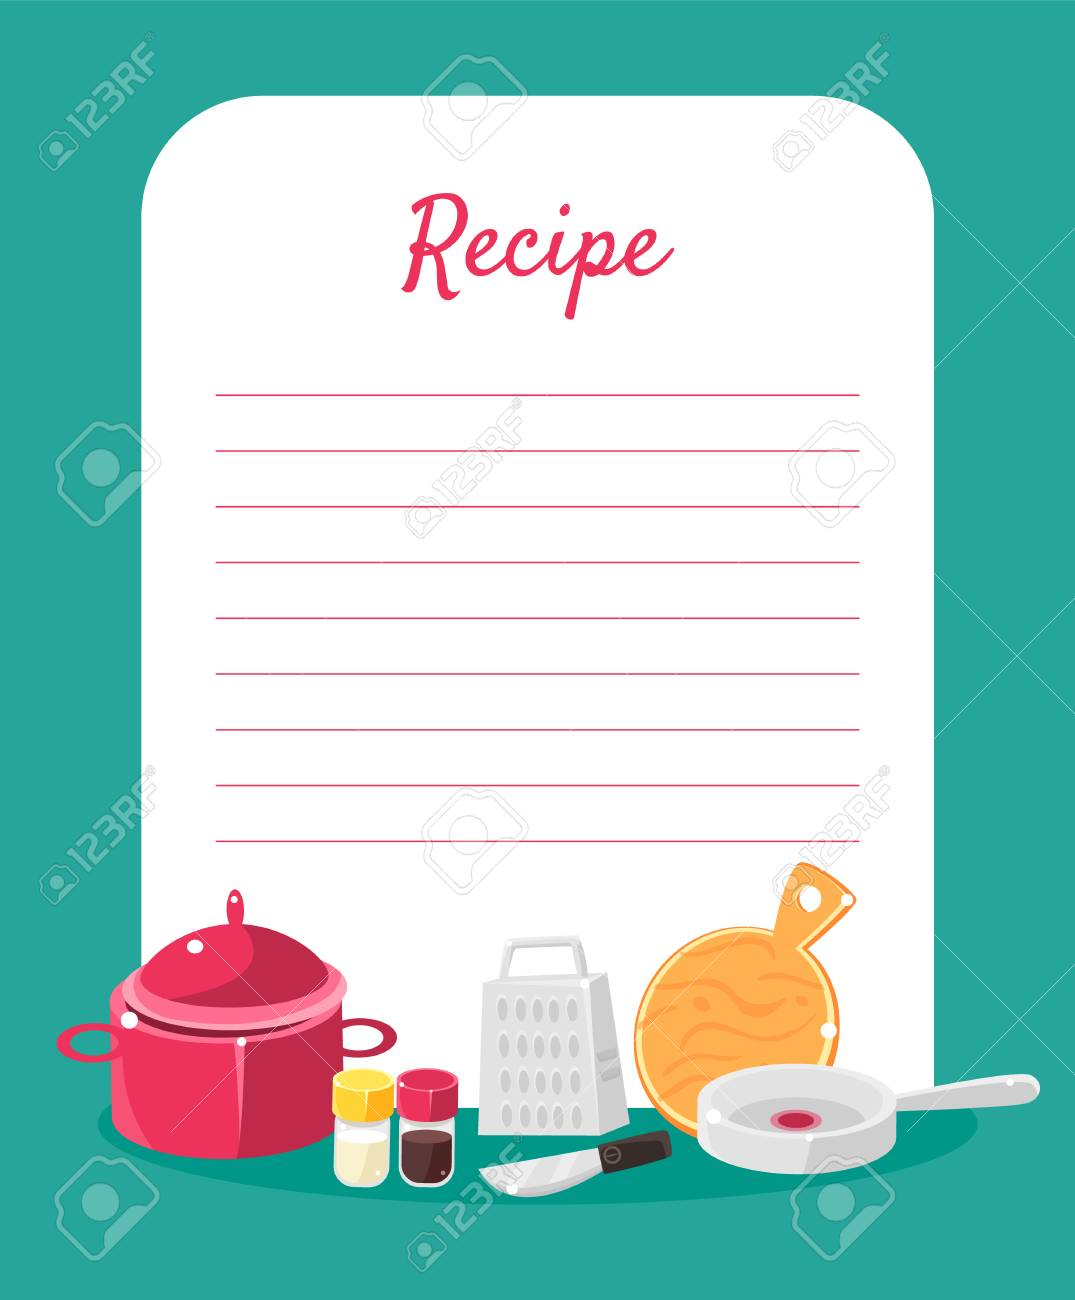 Recipe Cookbook Decorated with Kitchen Tools, Card with Lines for Recipe Placement Colorful Vector Illustration. - 128163493